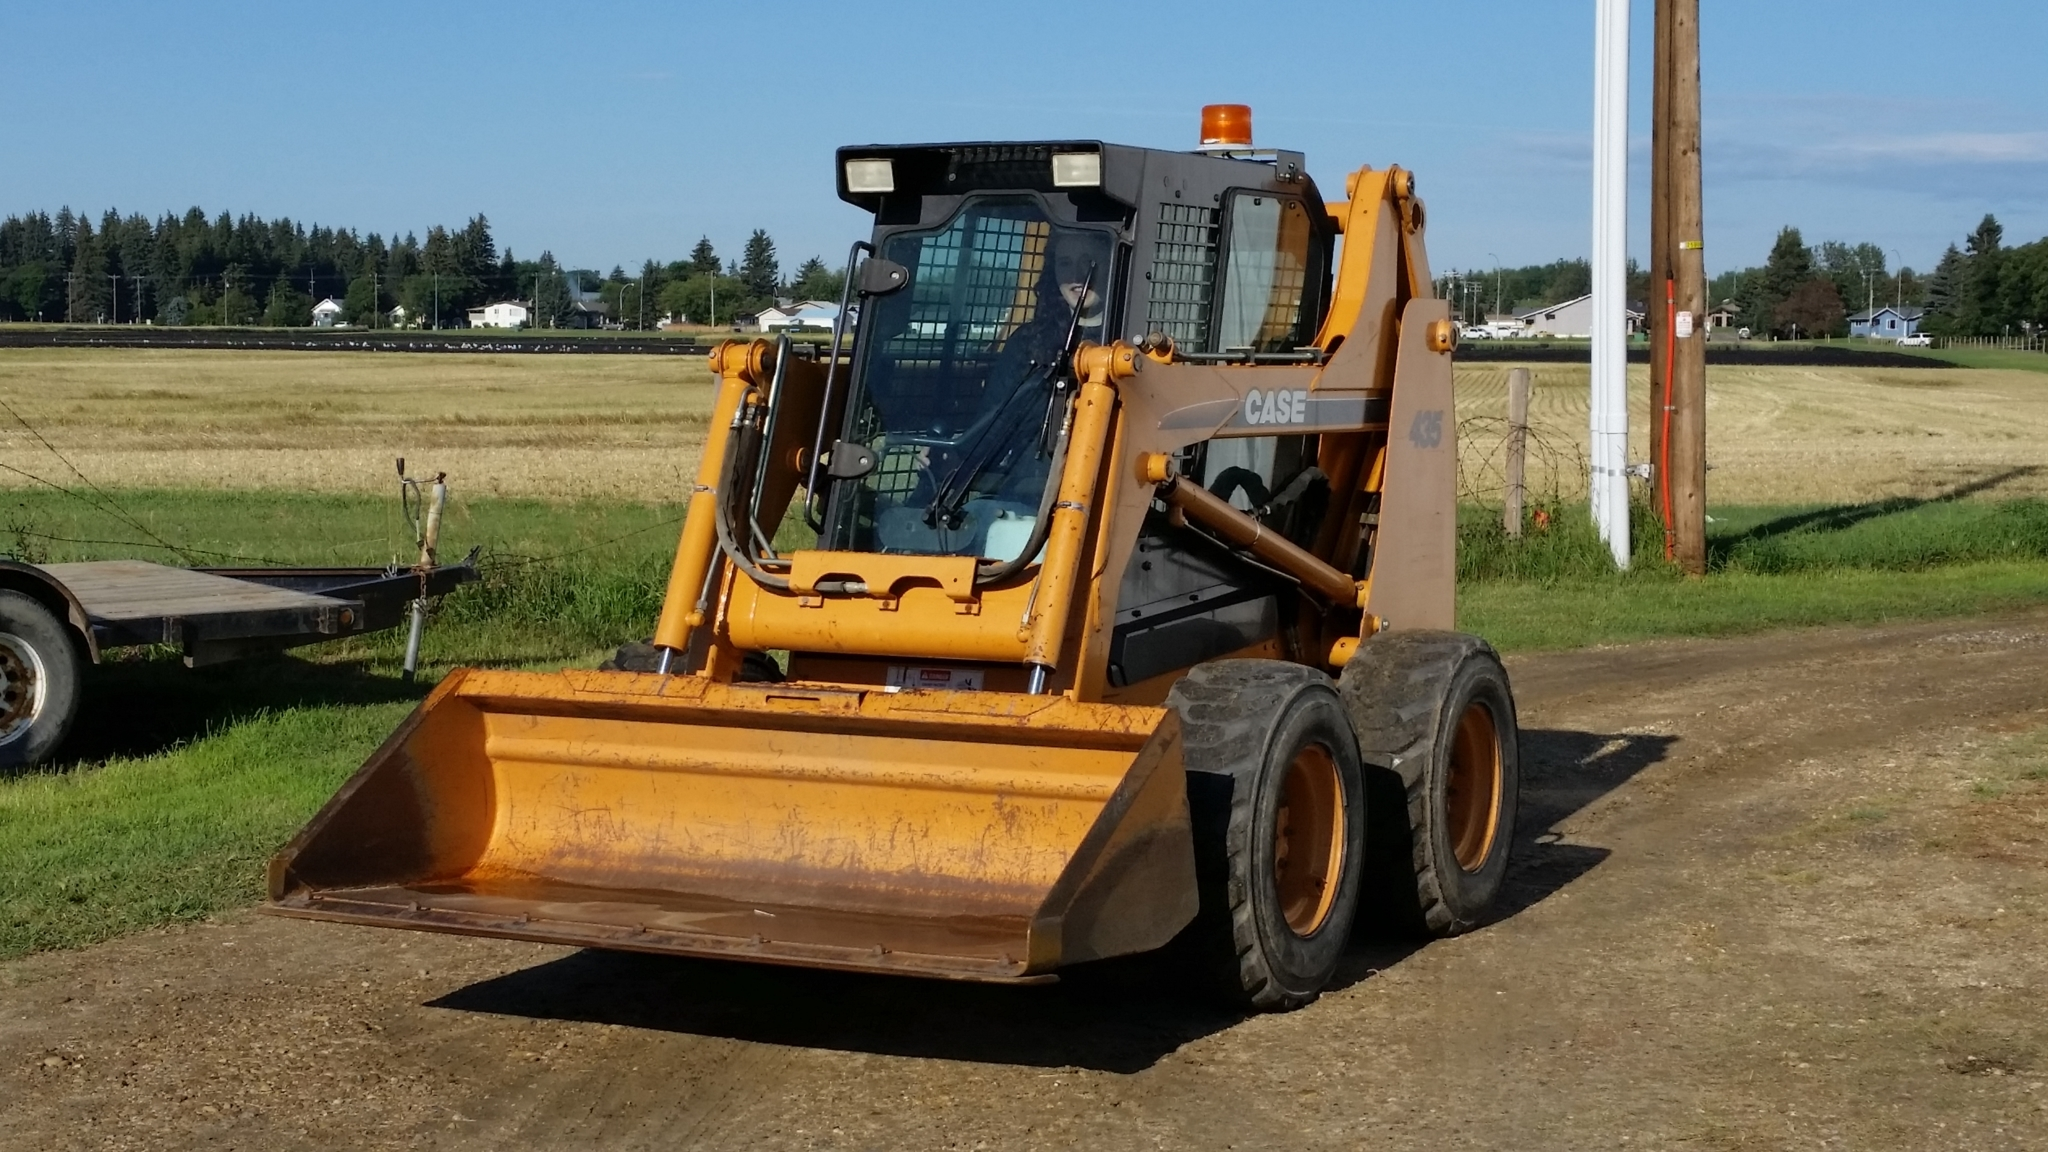 Rental Pro in Lacombe: Case Skid Steer 3 bucket choices and many other attachments are available.